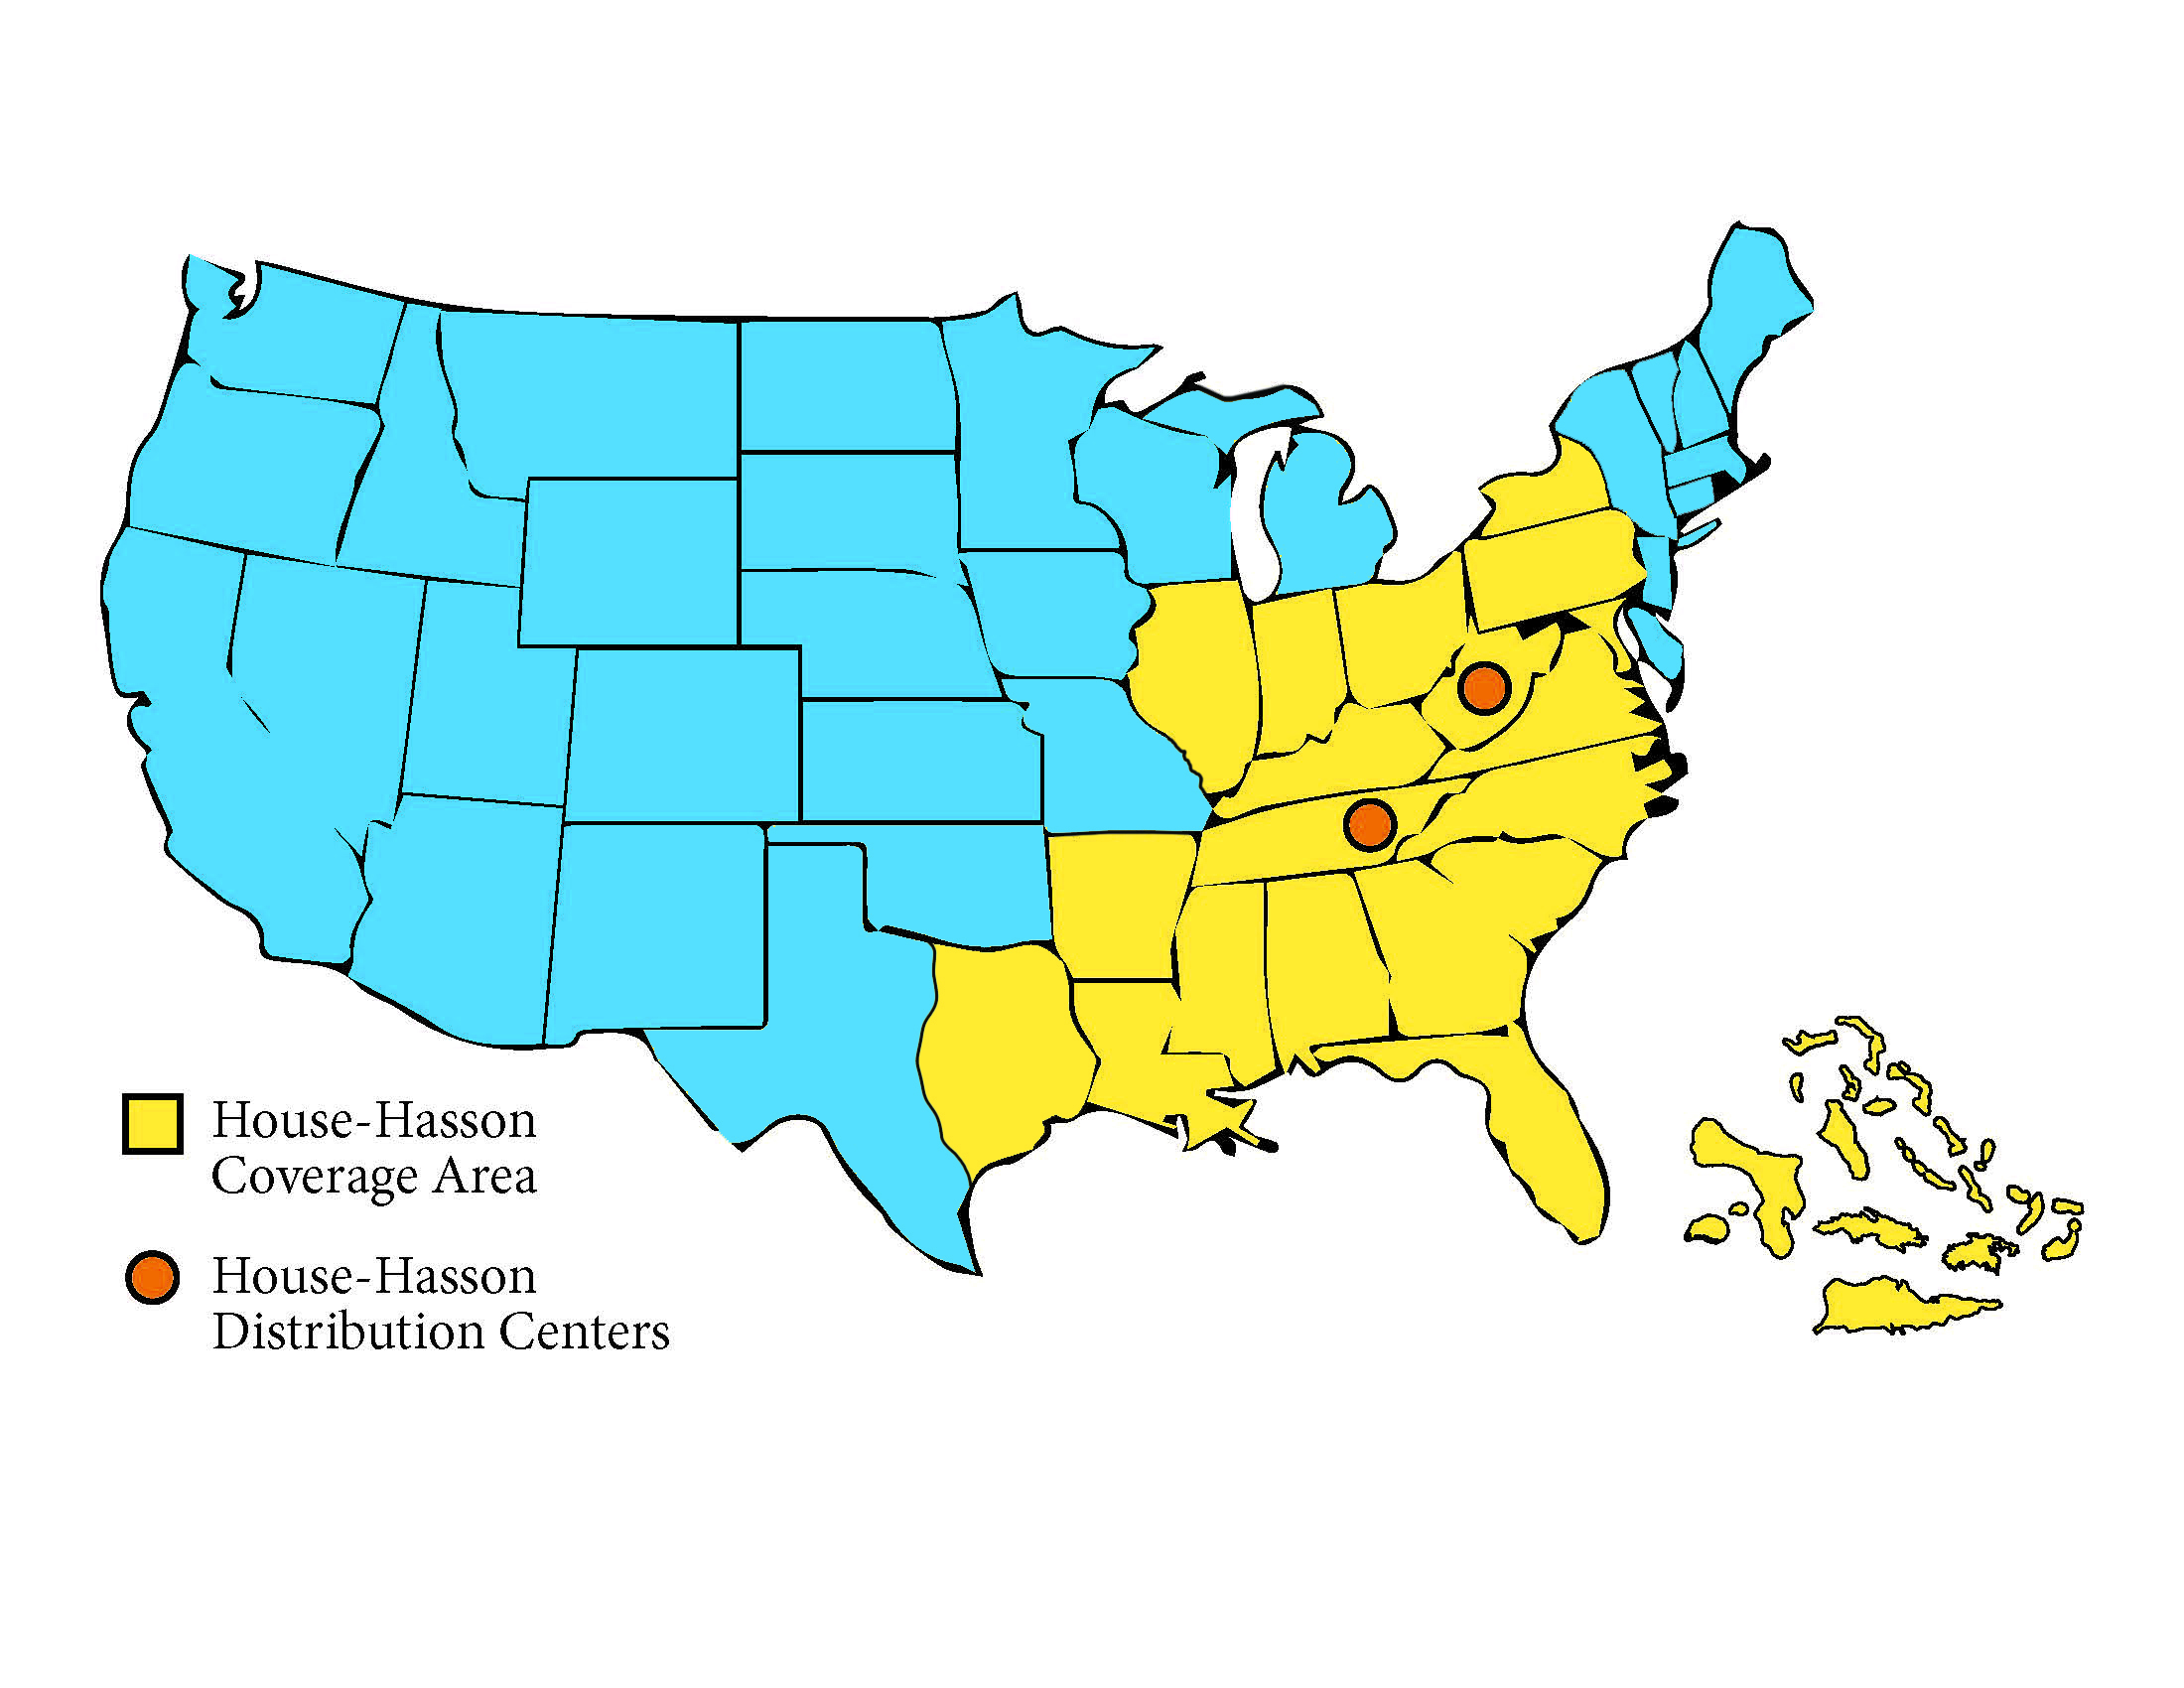 United States map of House-Hasson's coverage area